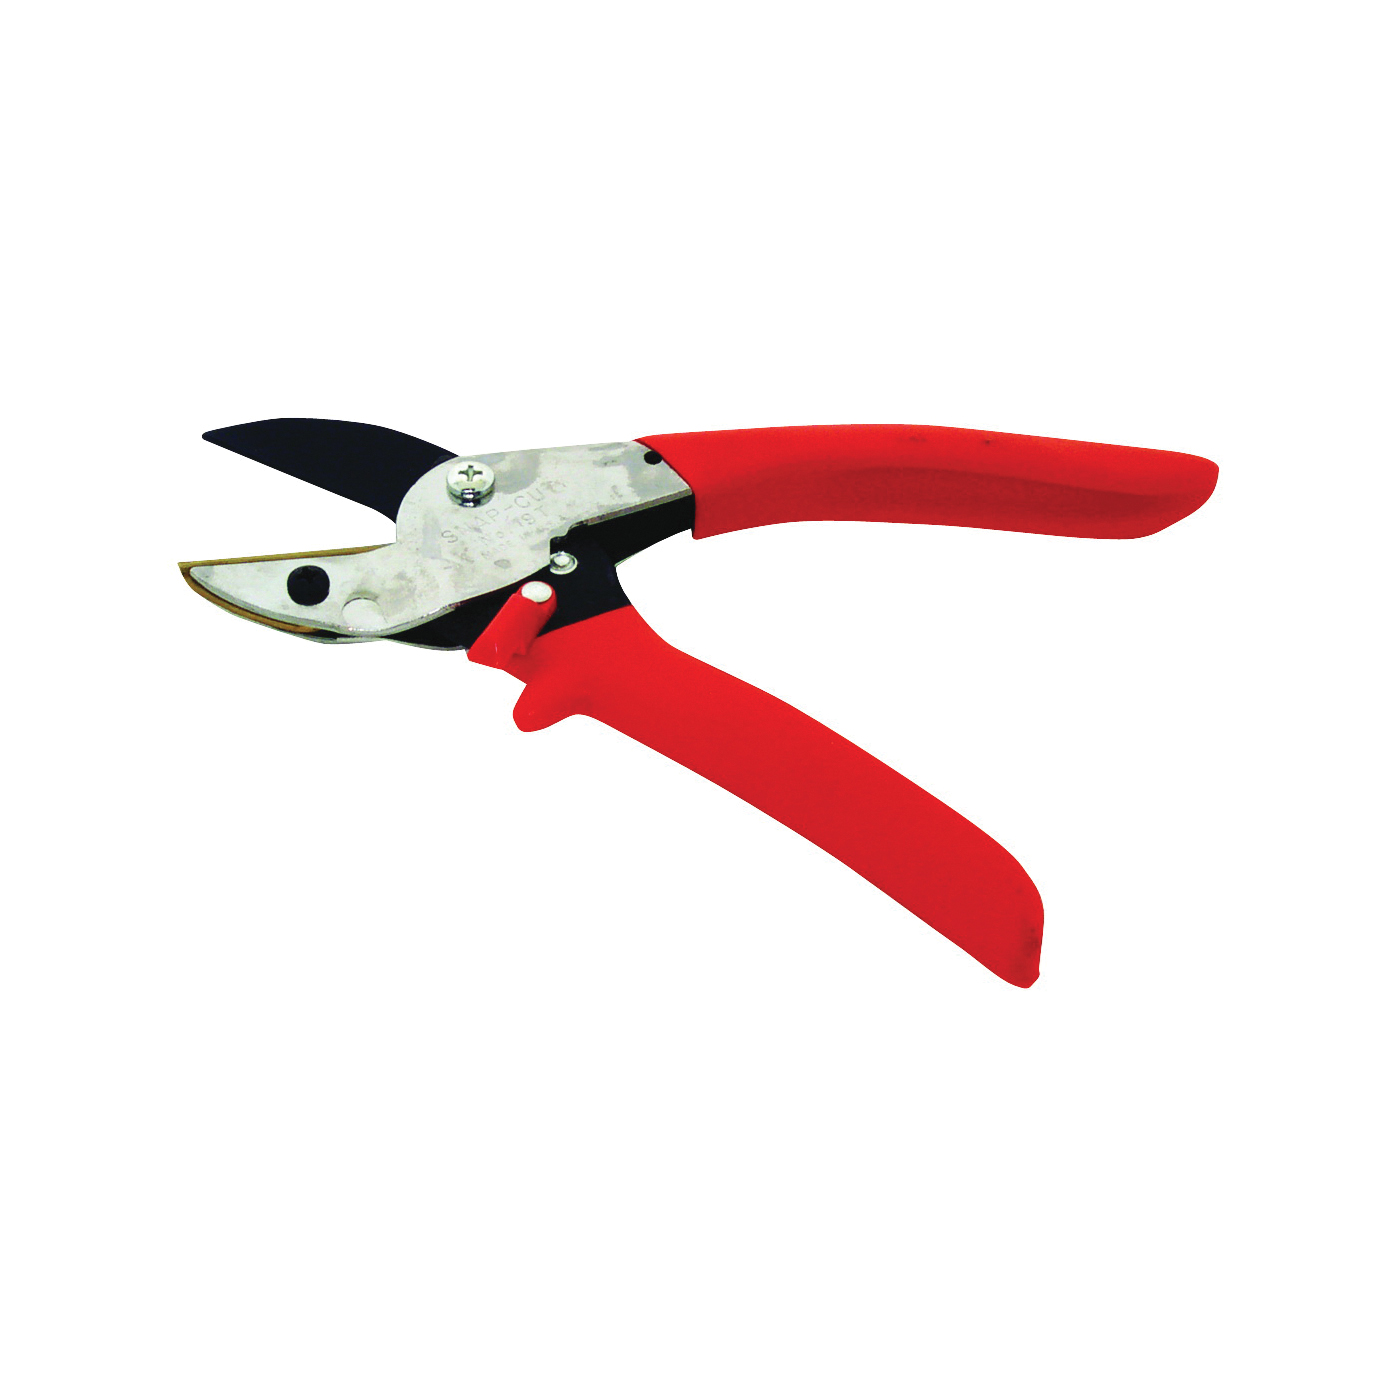 Picture of Gilmour 800196-1001 Hand Pruner, 3/4 in Cutting, 8 in OAL, Steel Blade